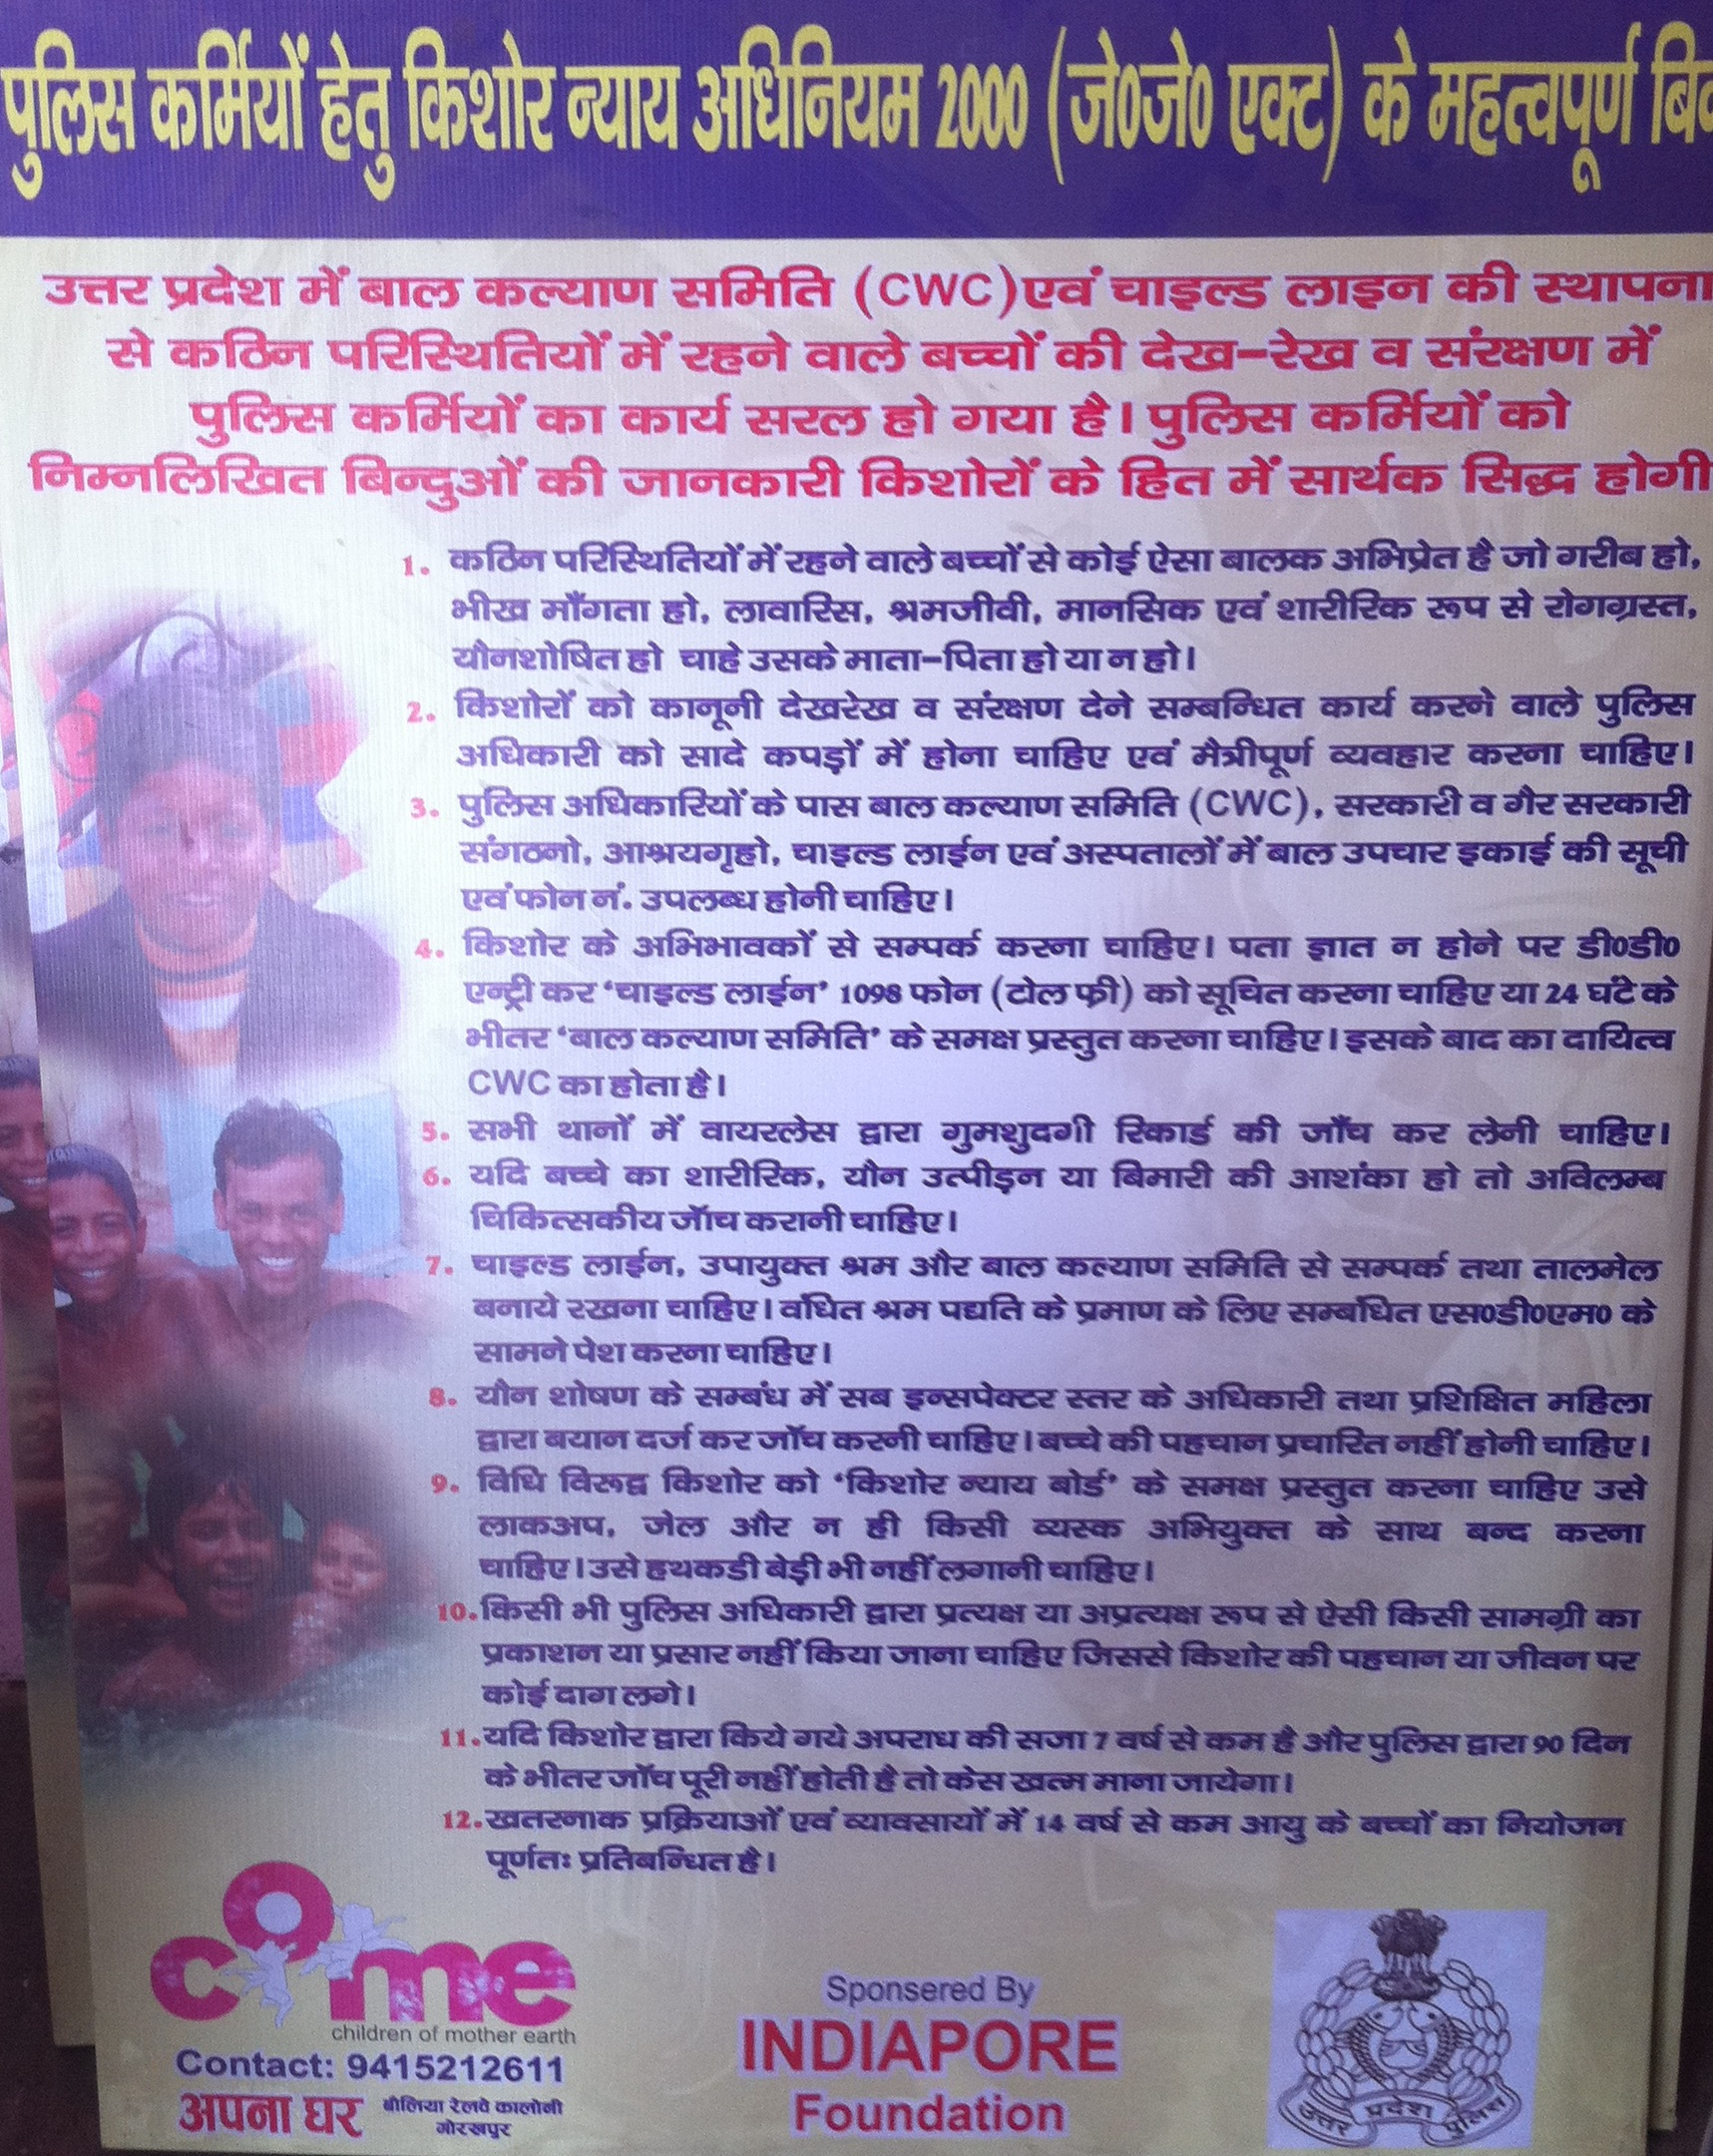 Photo of a Child Rights poster produced by CoME